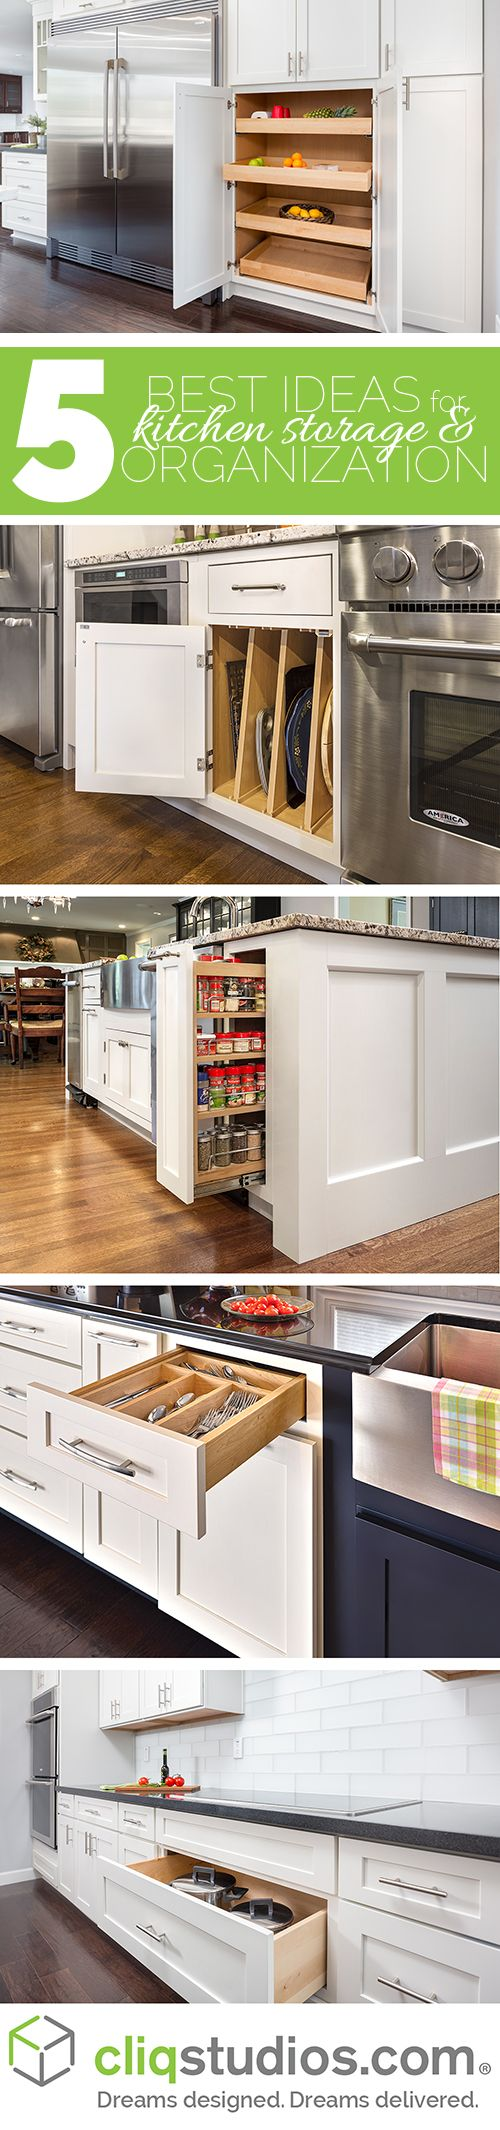 Best 25+ Kitchen cabinet storage ideas on Pinterest | Pan organization,  Organize kitchen cupboards and Kitchen cabinet organization